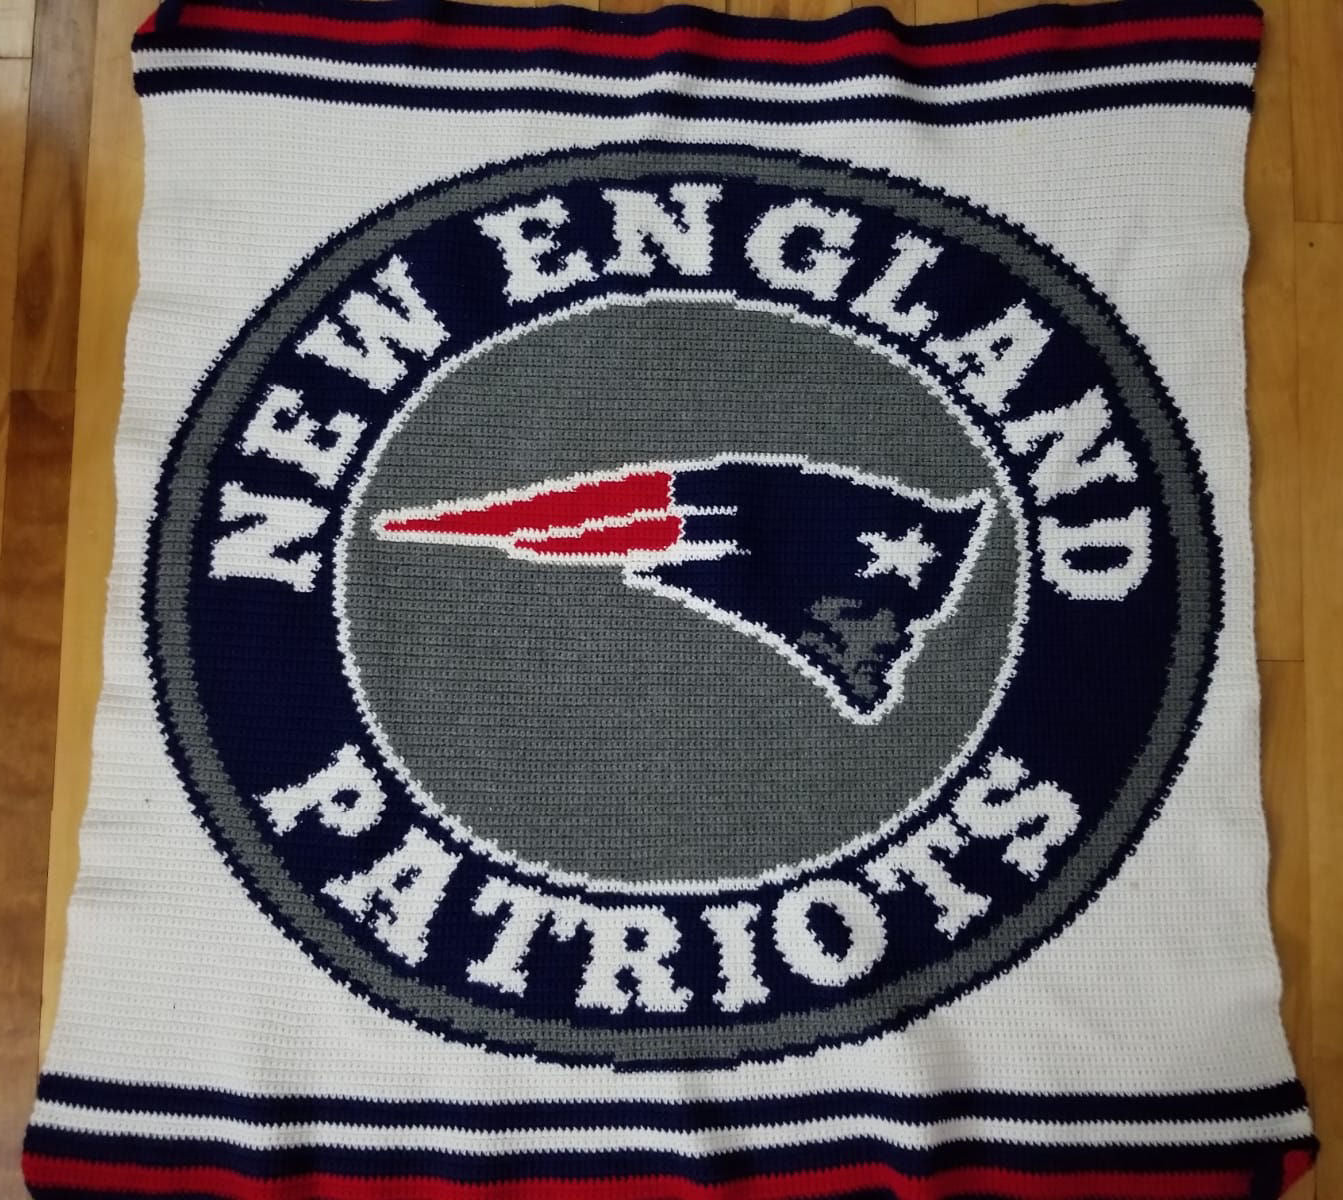 New England Patriots Blanket